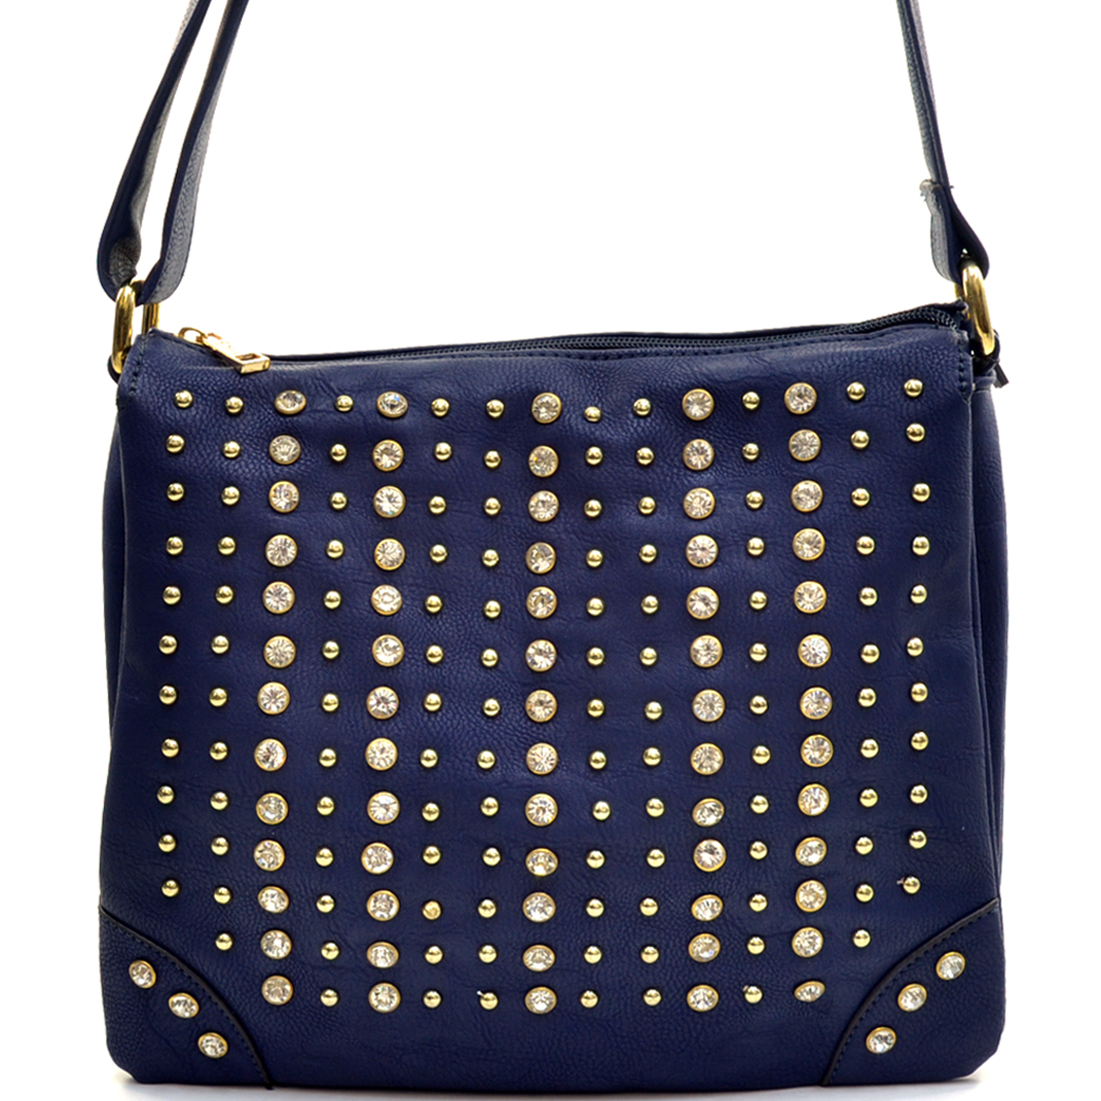 Rhinestone Gold Studded Messenger Bag